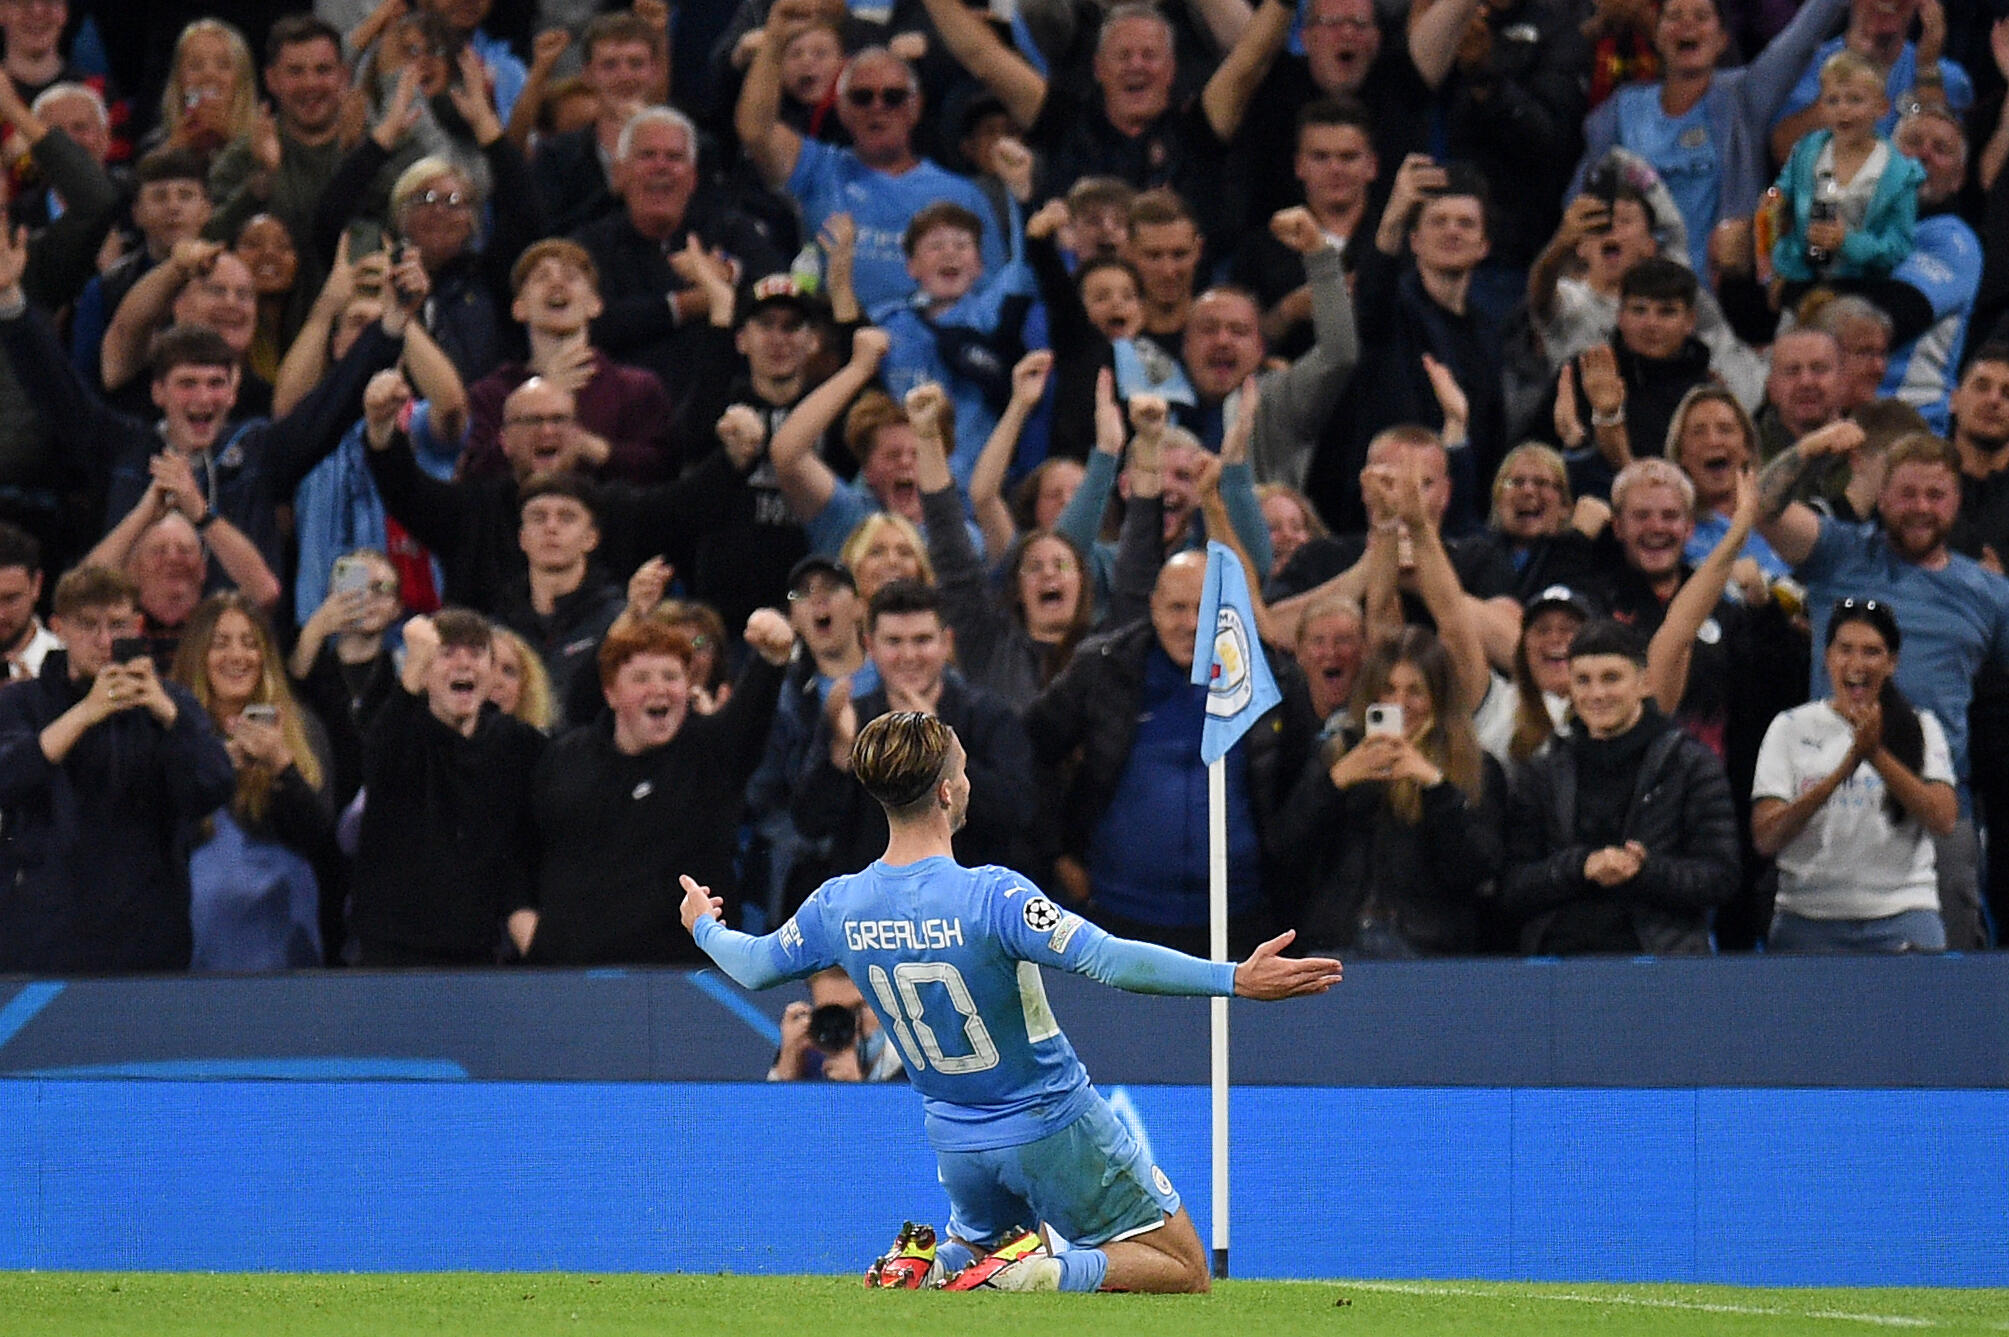 Jack Grealish celebrates scoring his first Champions League goal for Manchester City